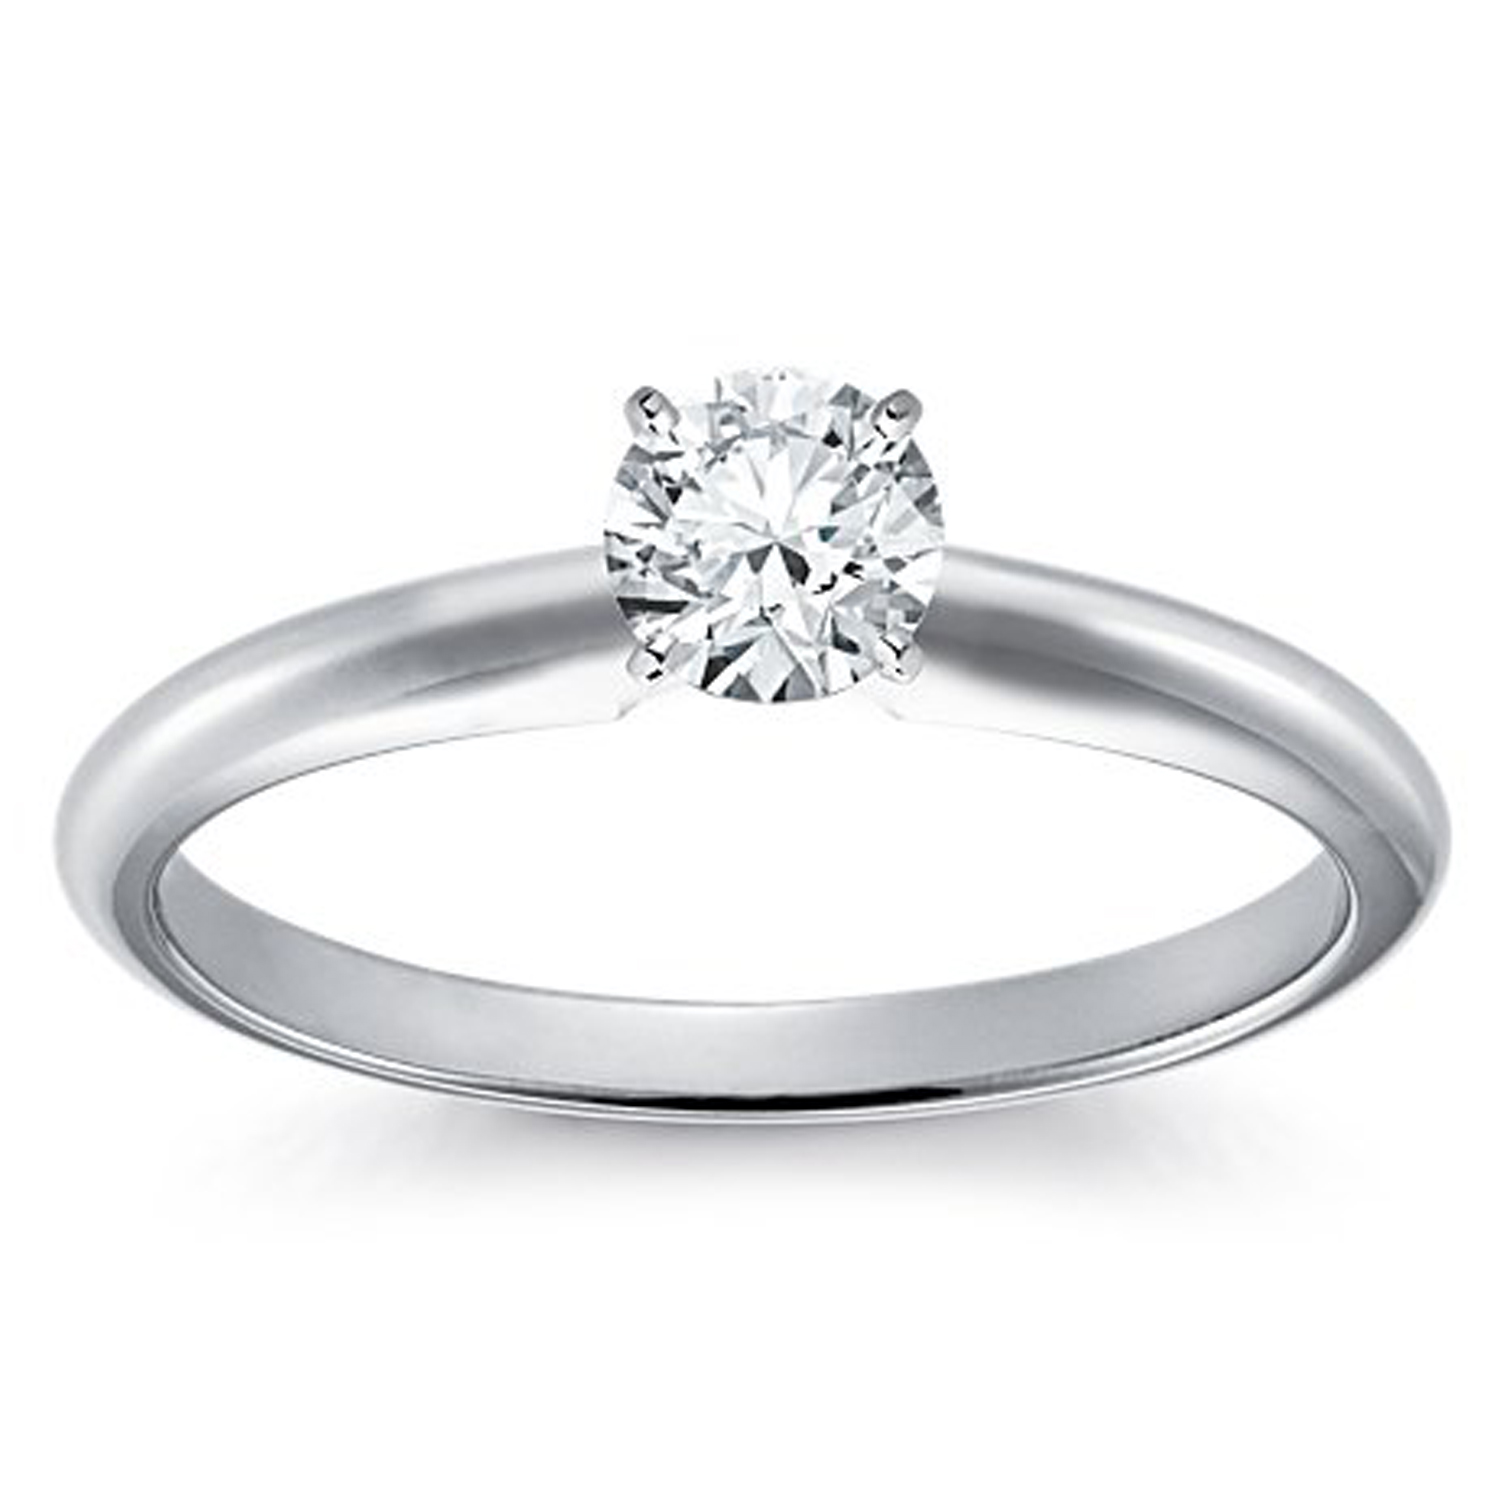 SOLITARE50 14K YG OR WG  0.50 CT DIAMOND SOLITAIRE RING  SI  G TO H  IN COLOUR WITH CERTIFICATE